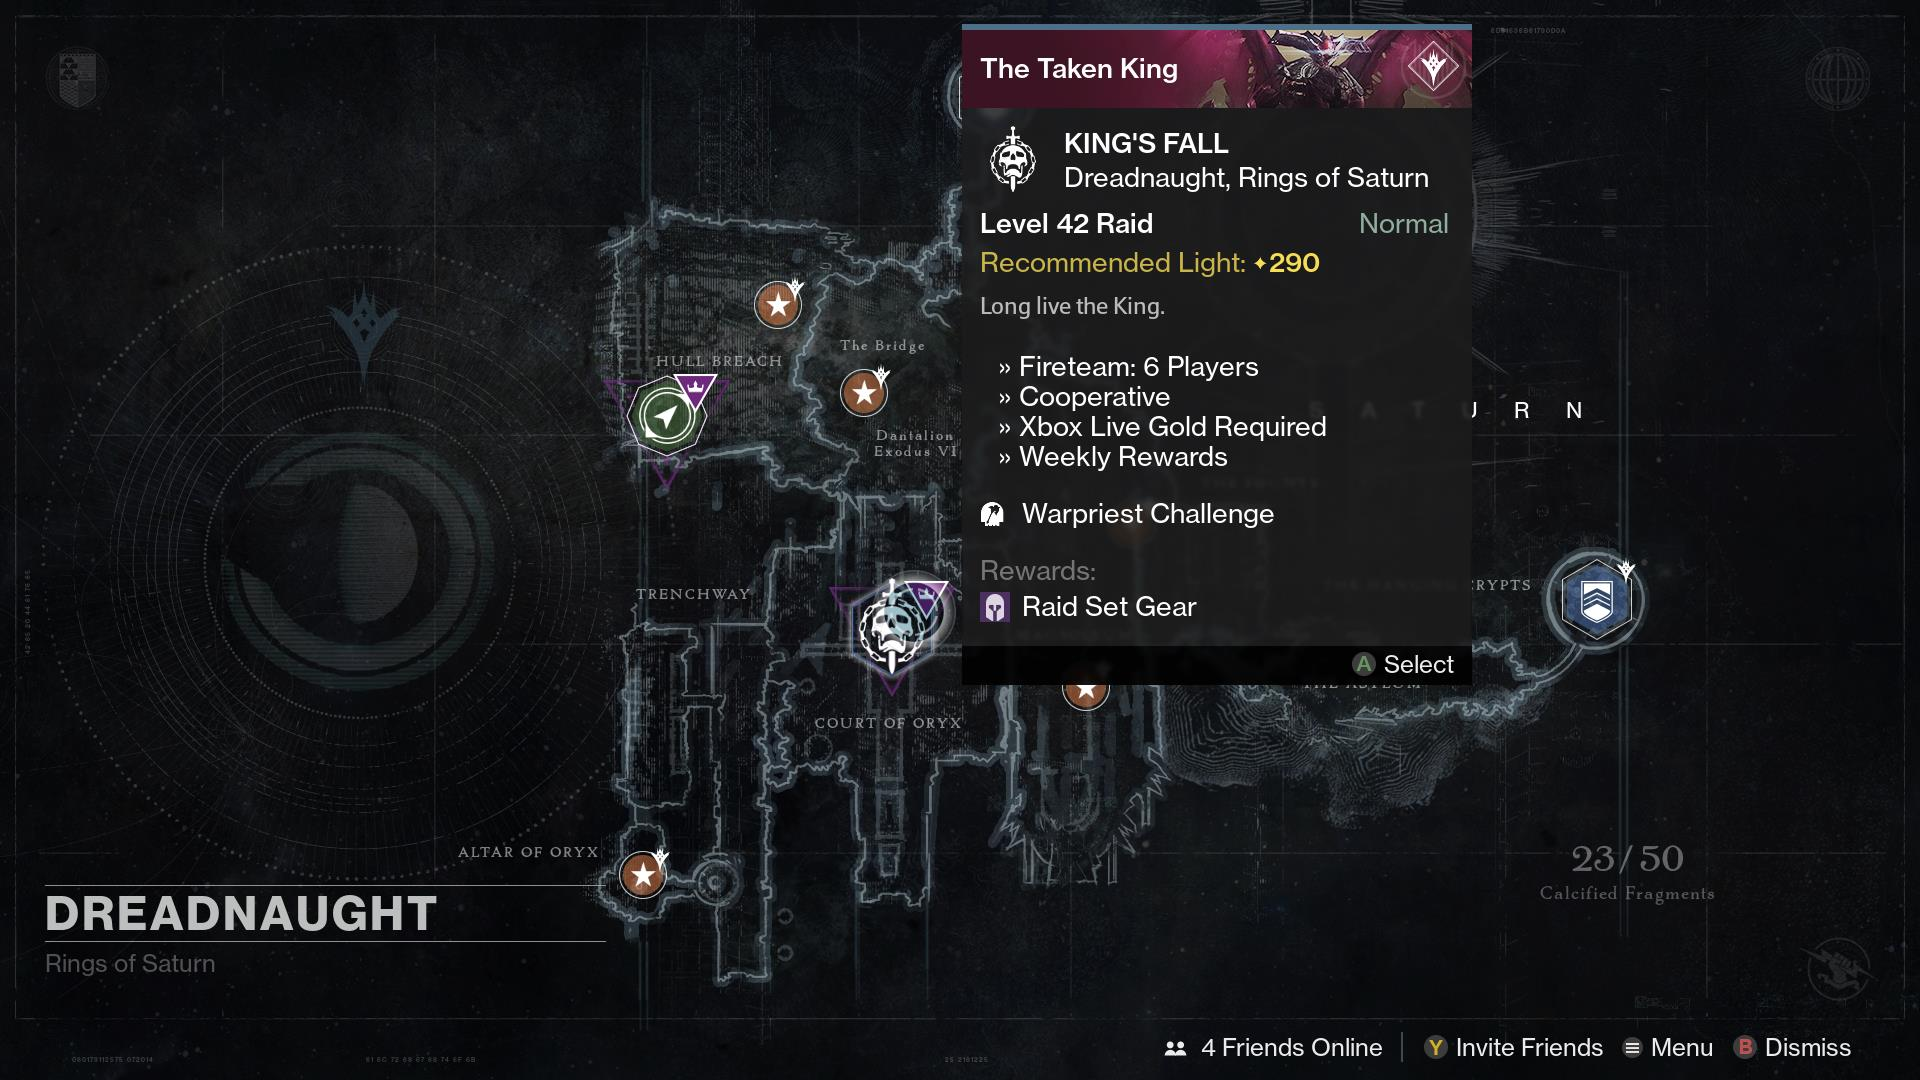 Destiny raid and nightfall matchmaking